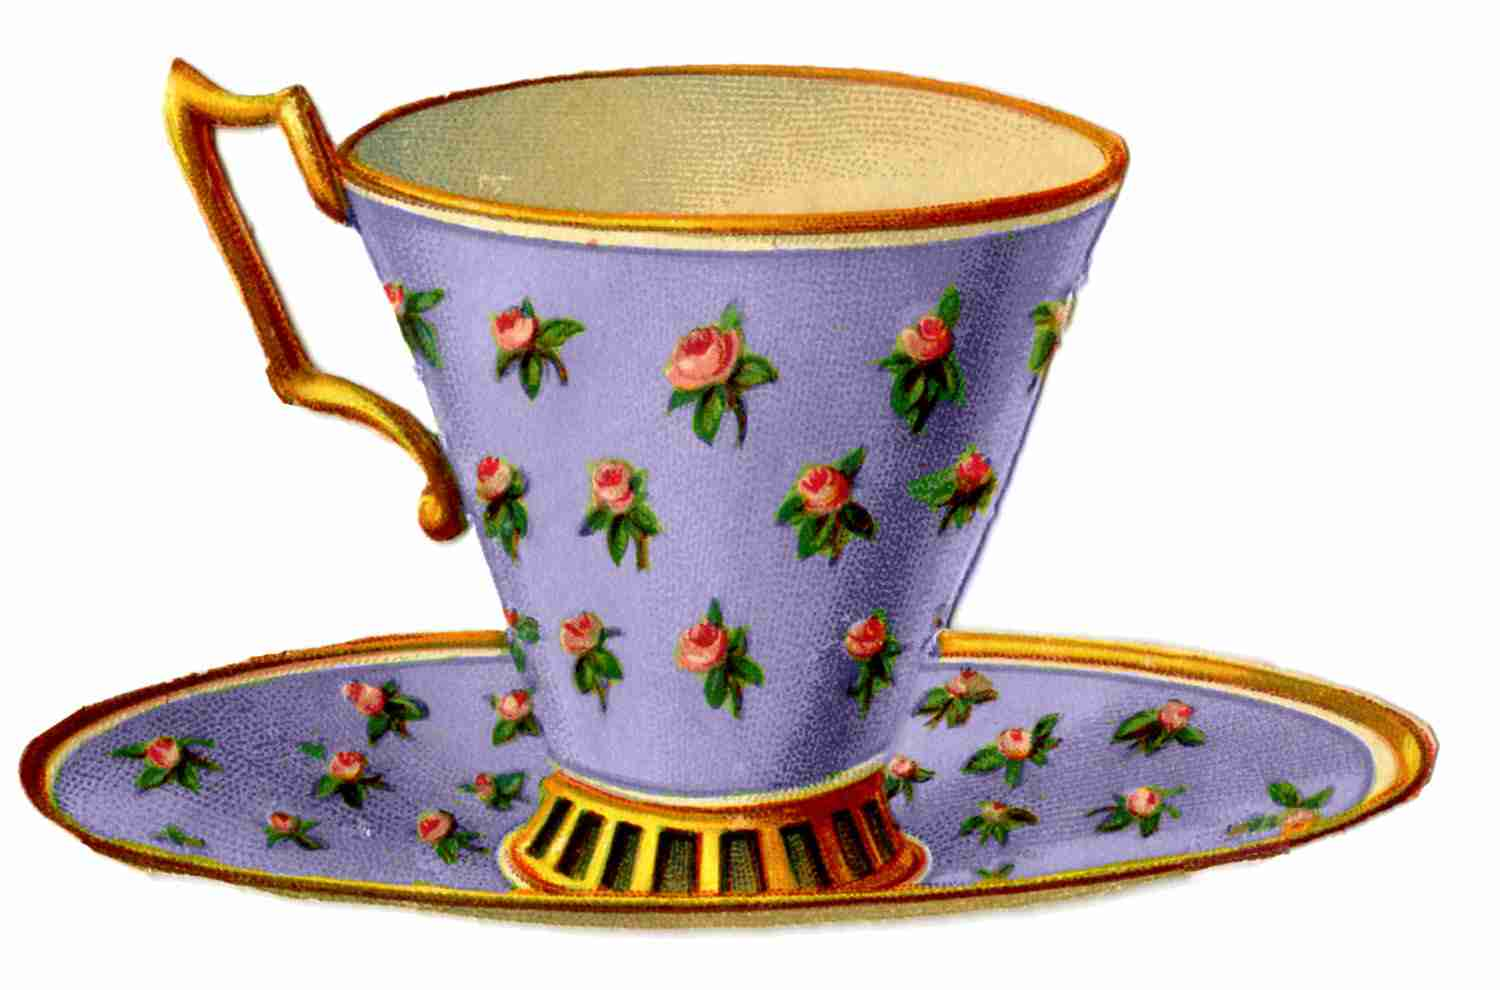 8888+ Cliparts: Teacups And Saucers Clipart.